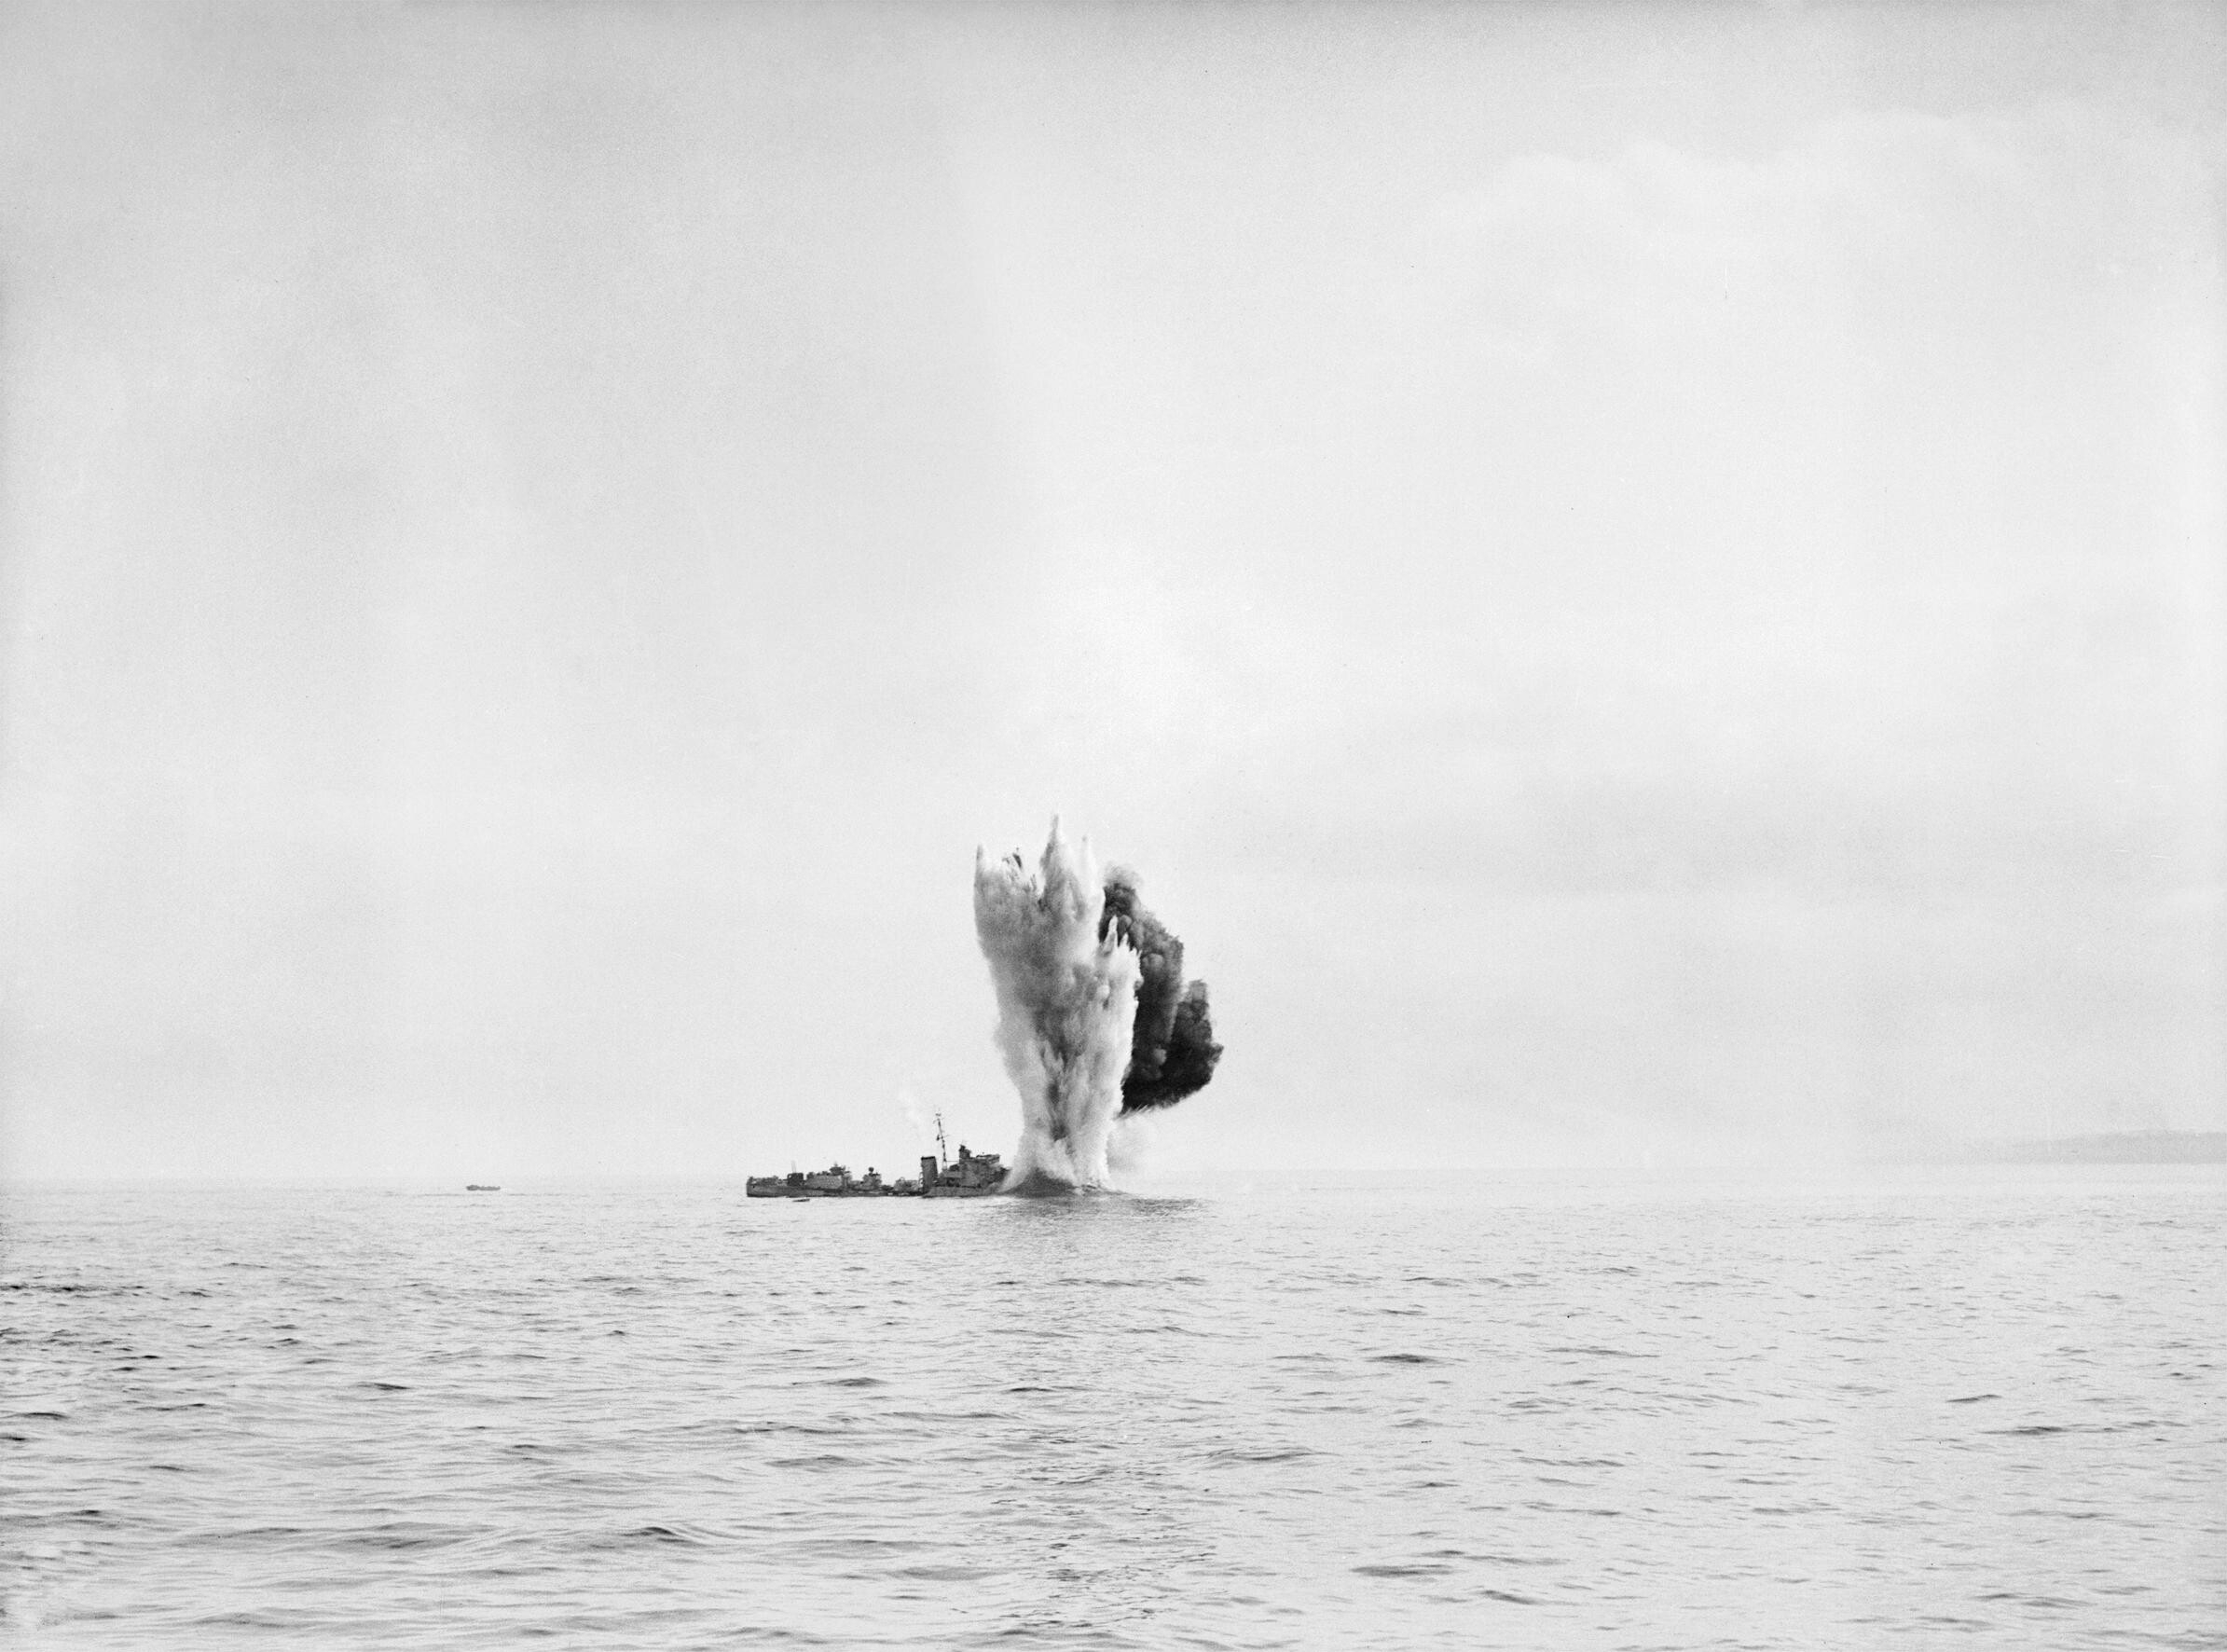 Operation Jubilee - HMS BERKELEY being torpedoed by our own forces after being bombed during the Combined Operations daylight raid on Dieppe